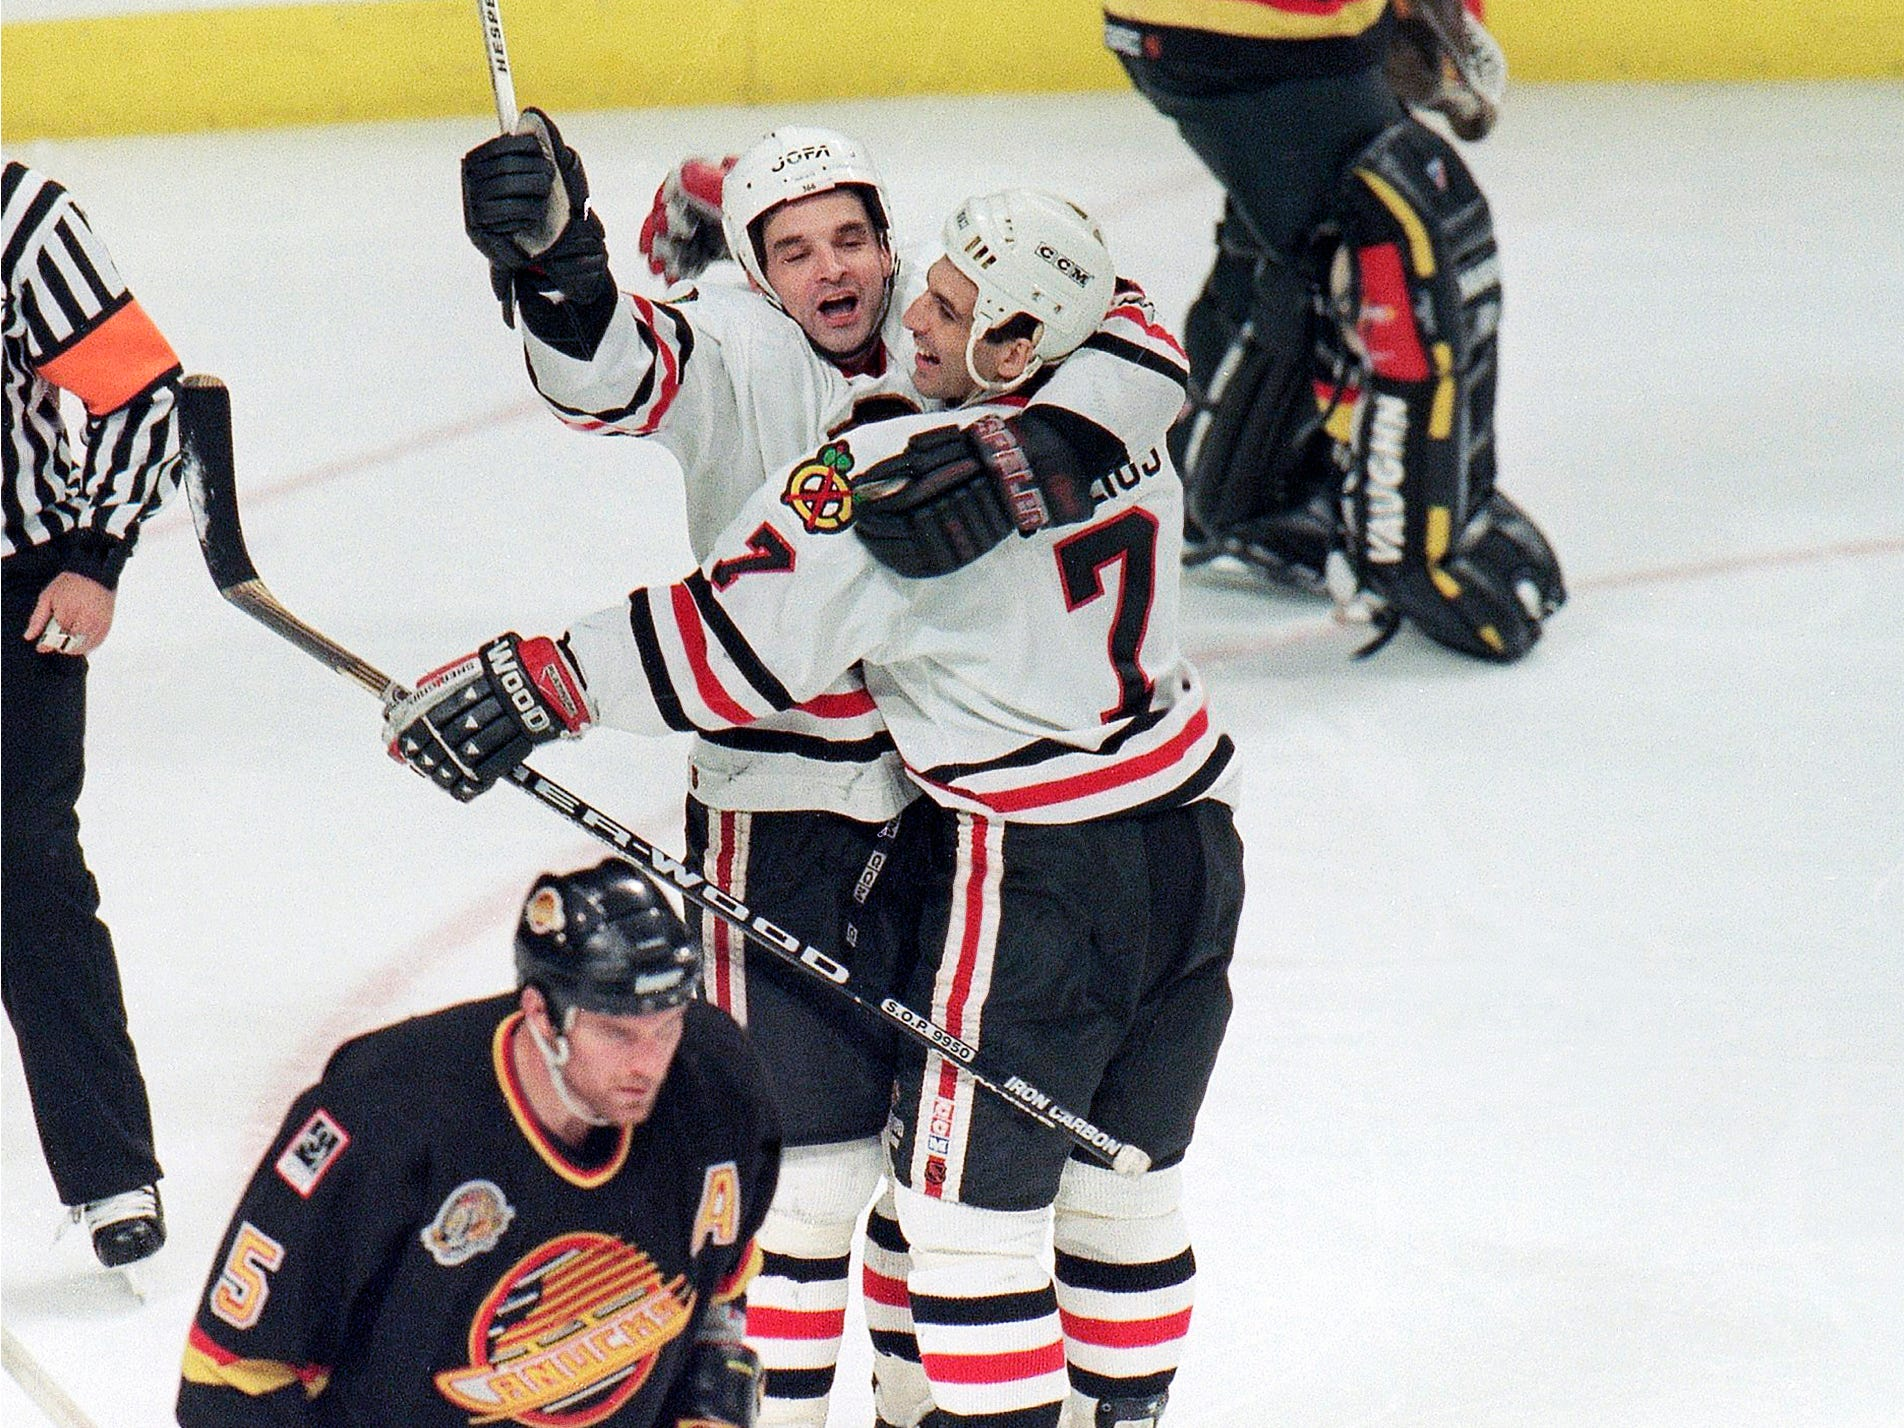 Chicago Blackhawks' Joe Murphy, left, celebrates with teammate Chris Chelios after Murphy's overtime goal lifted the Blackhawks to a 2-1 victory over the Vancouver Canucks in a second-round playoff game, Sunday, May 21, 1995 in Chicago.